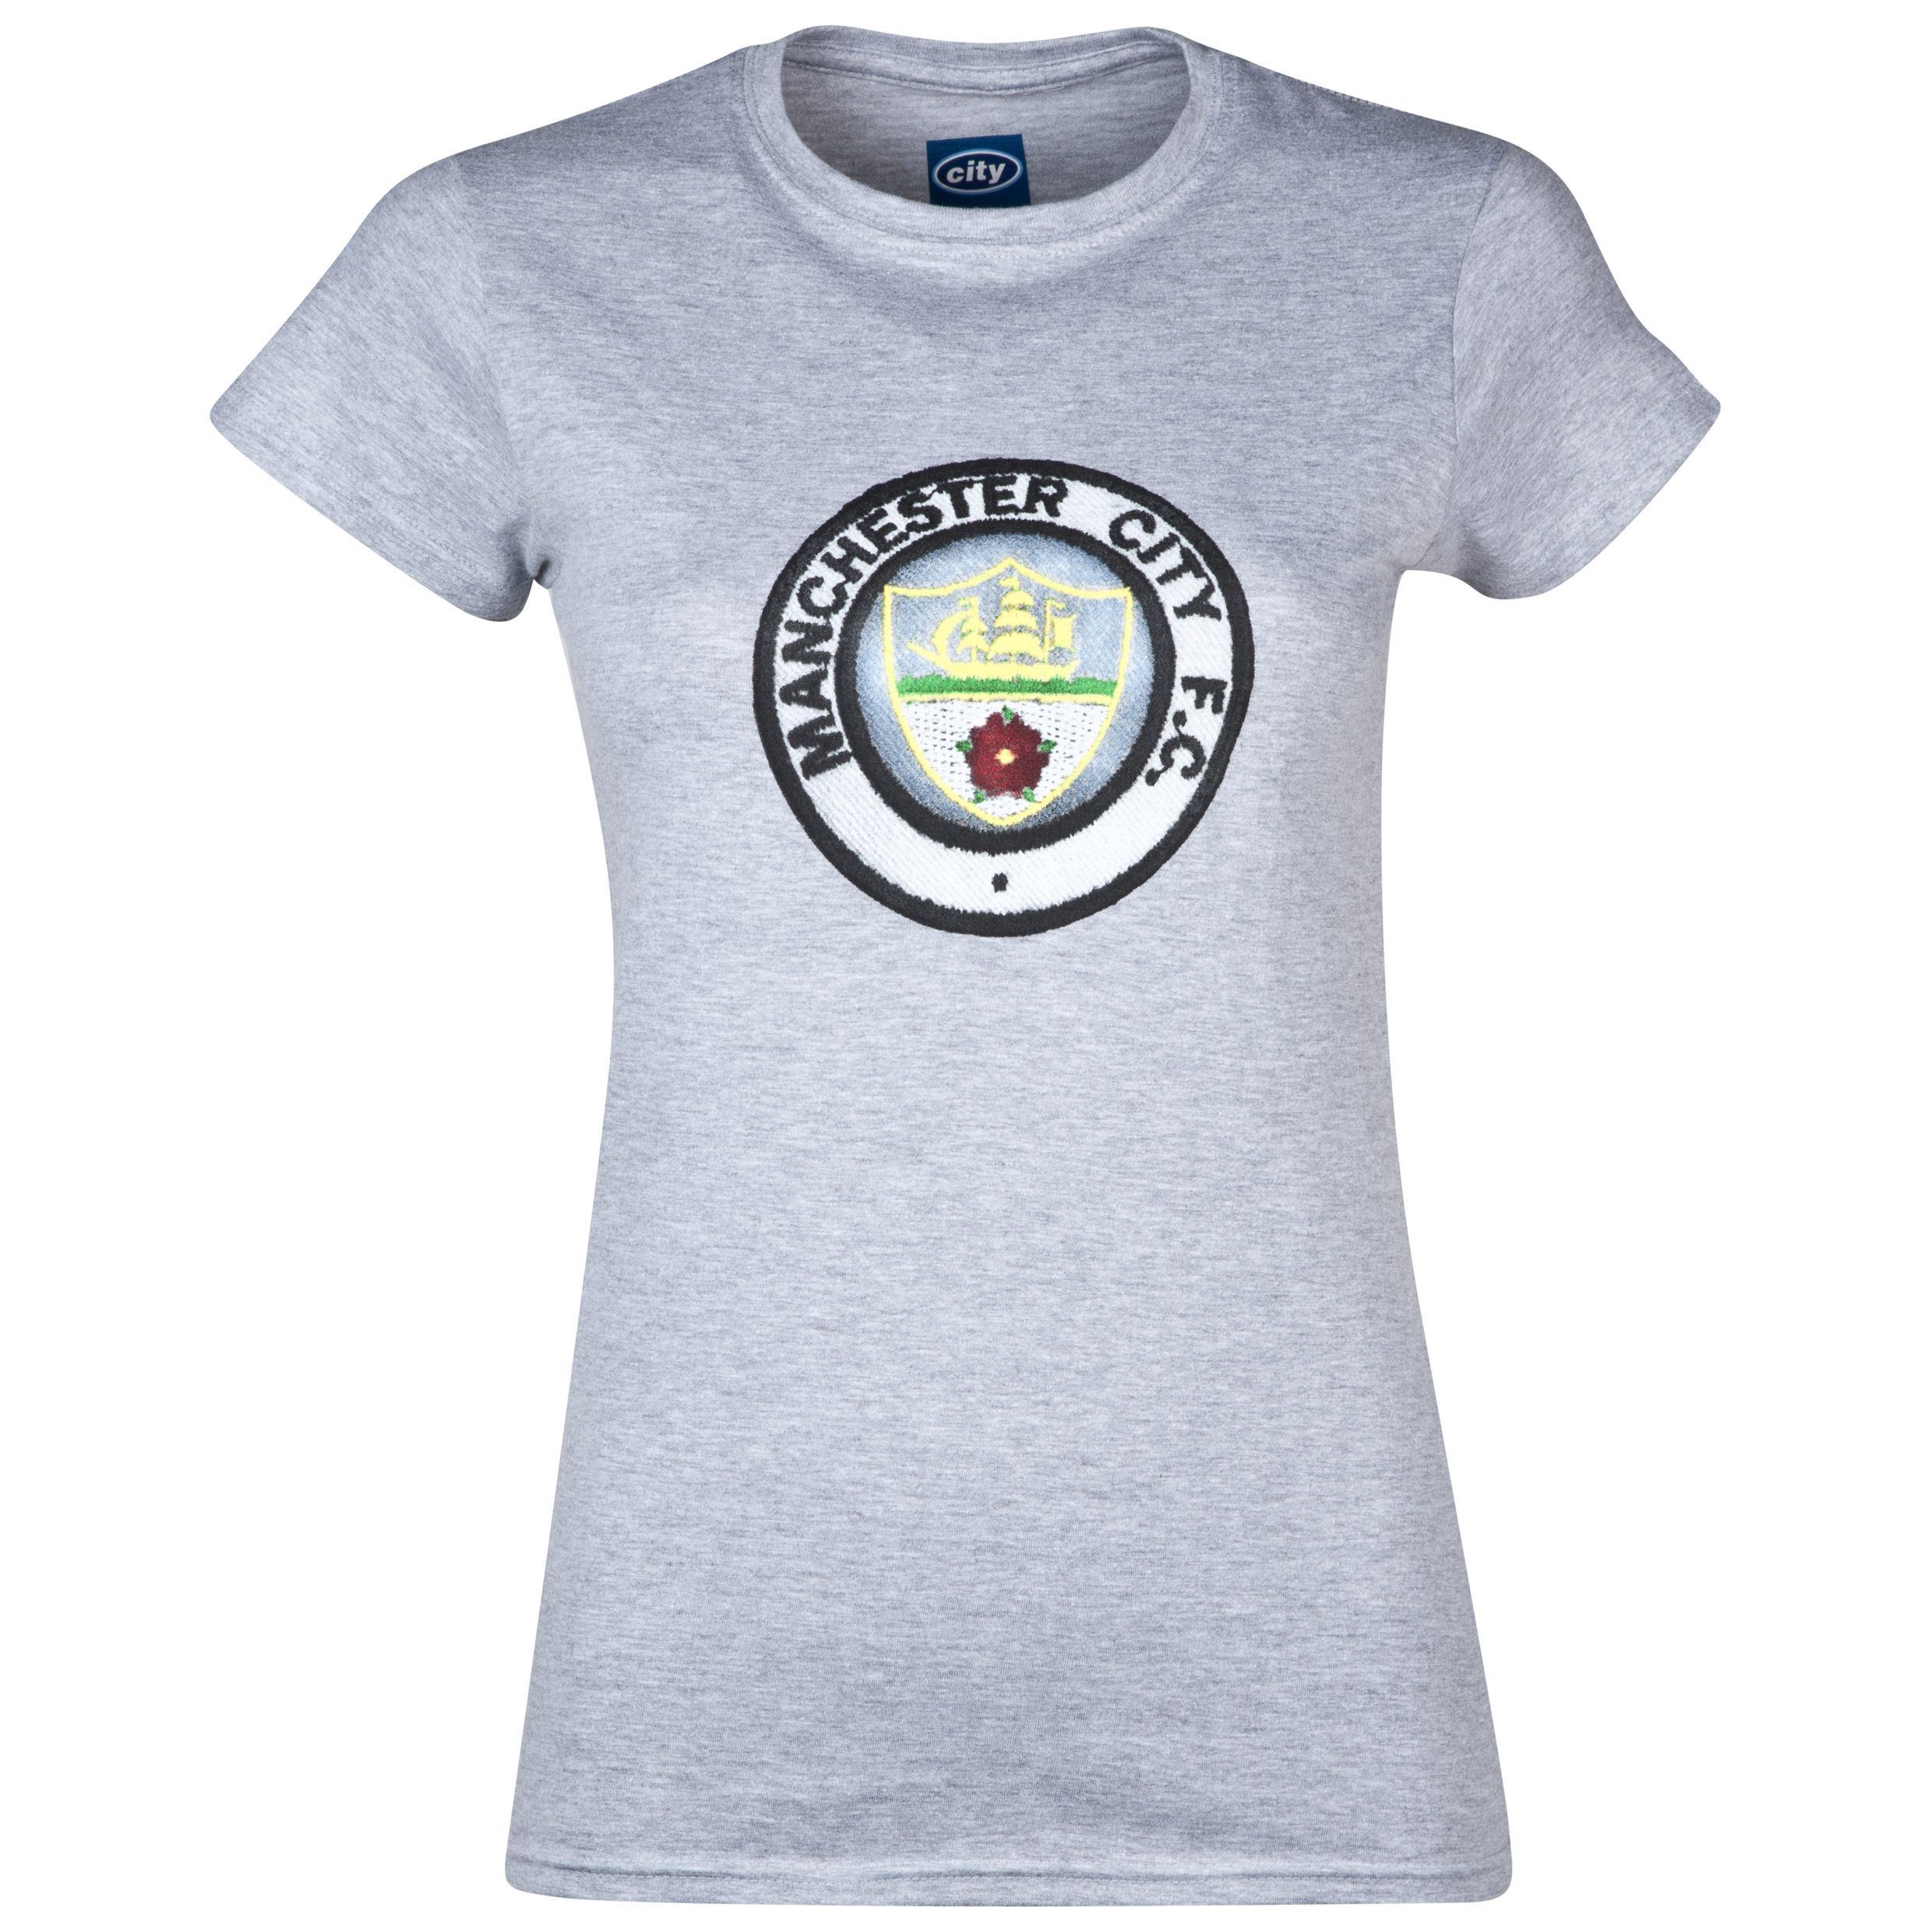 Manchester City 2 for 20 Retro Crest T-Shirt - Sports Grey - Womens